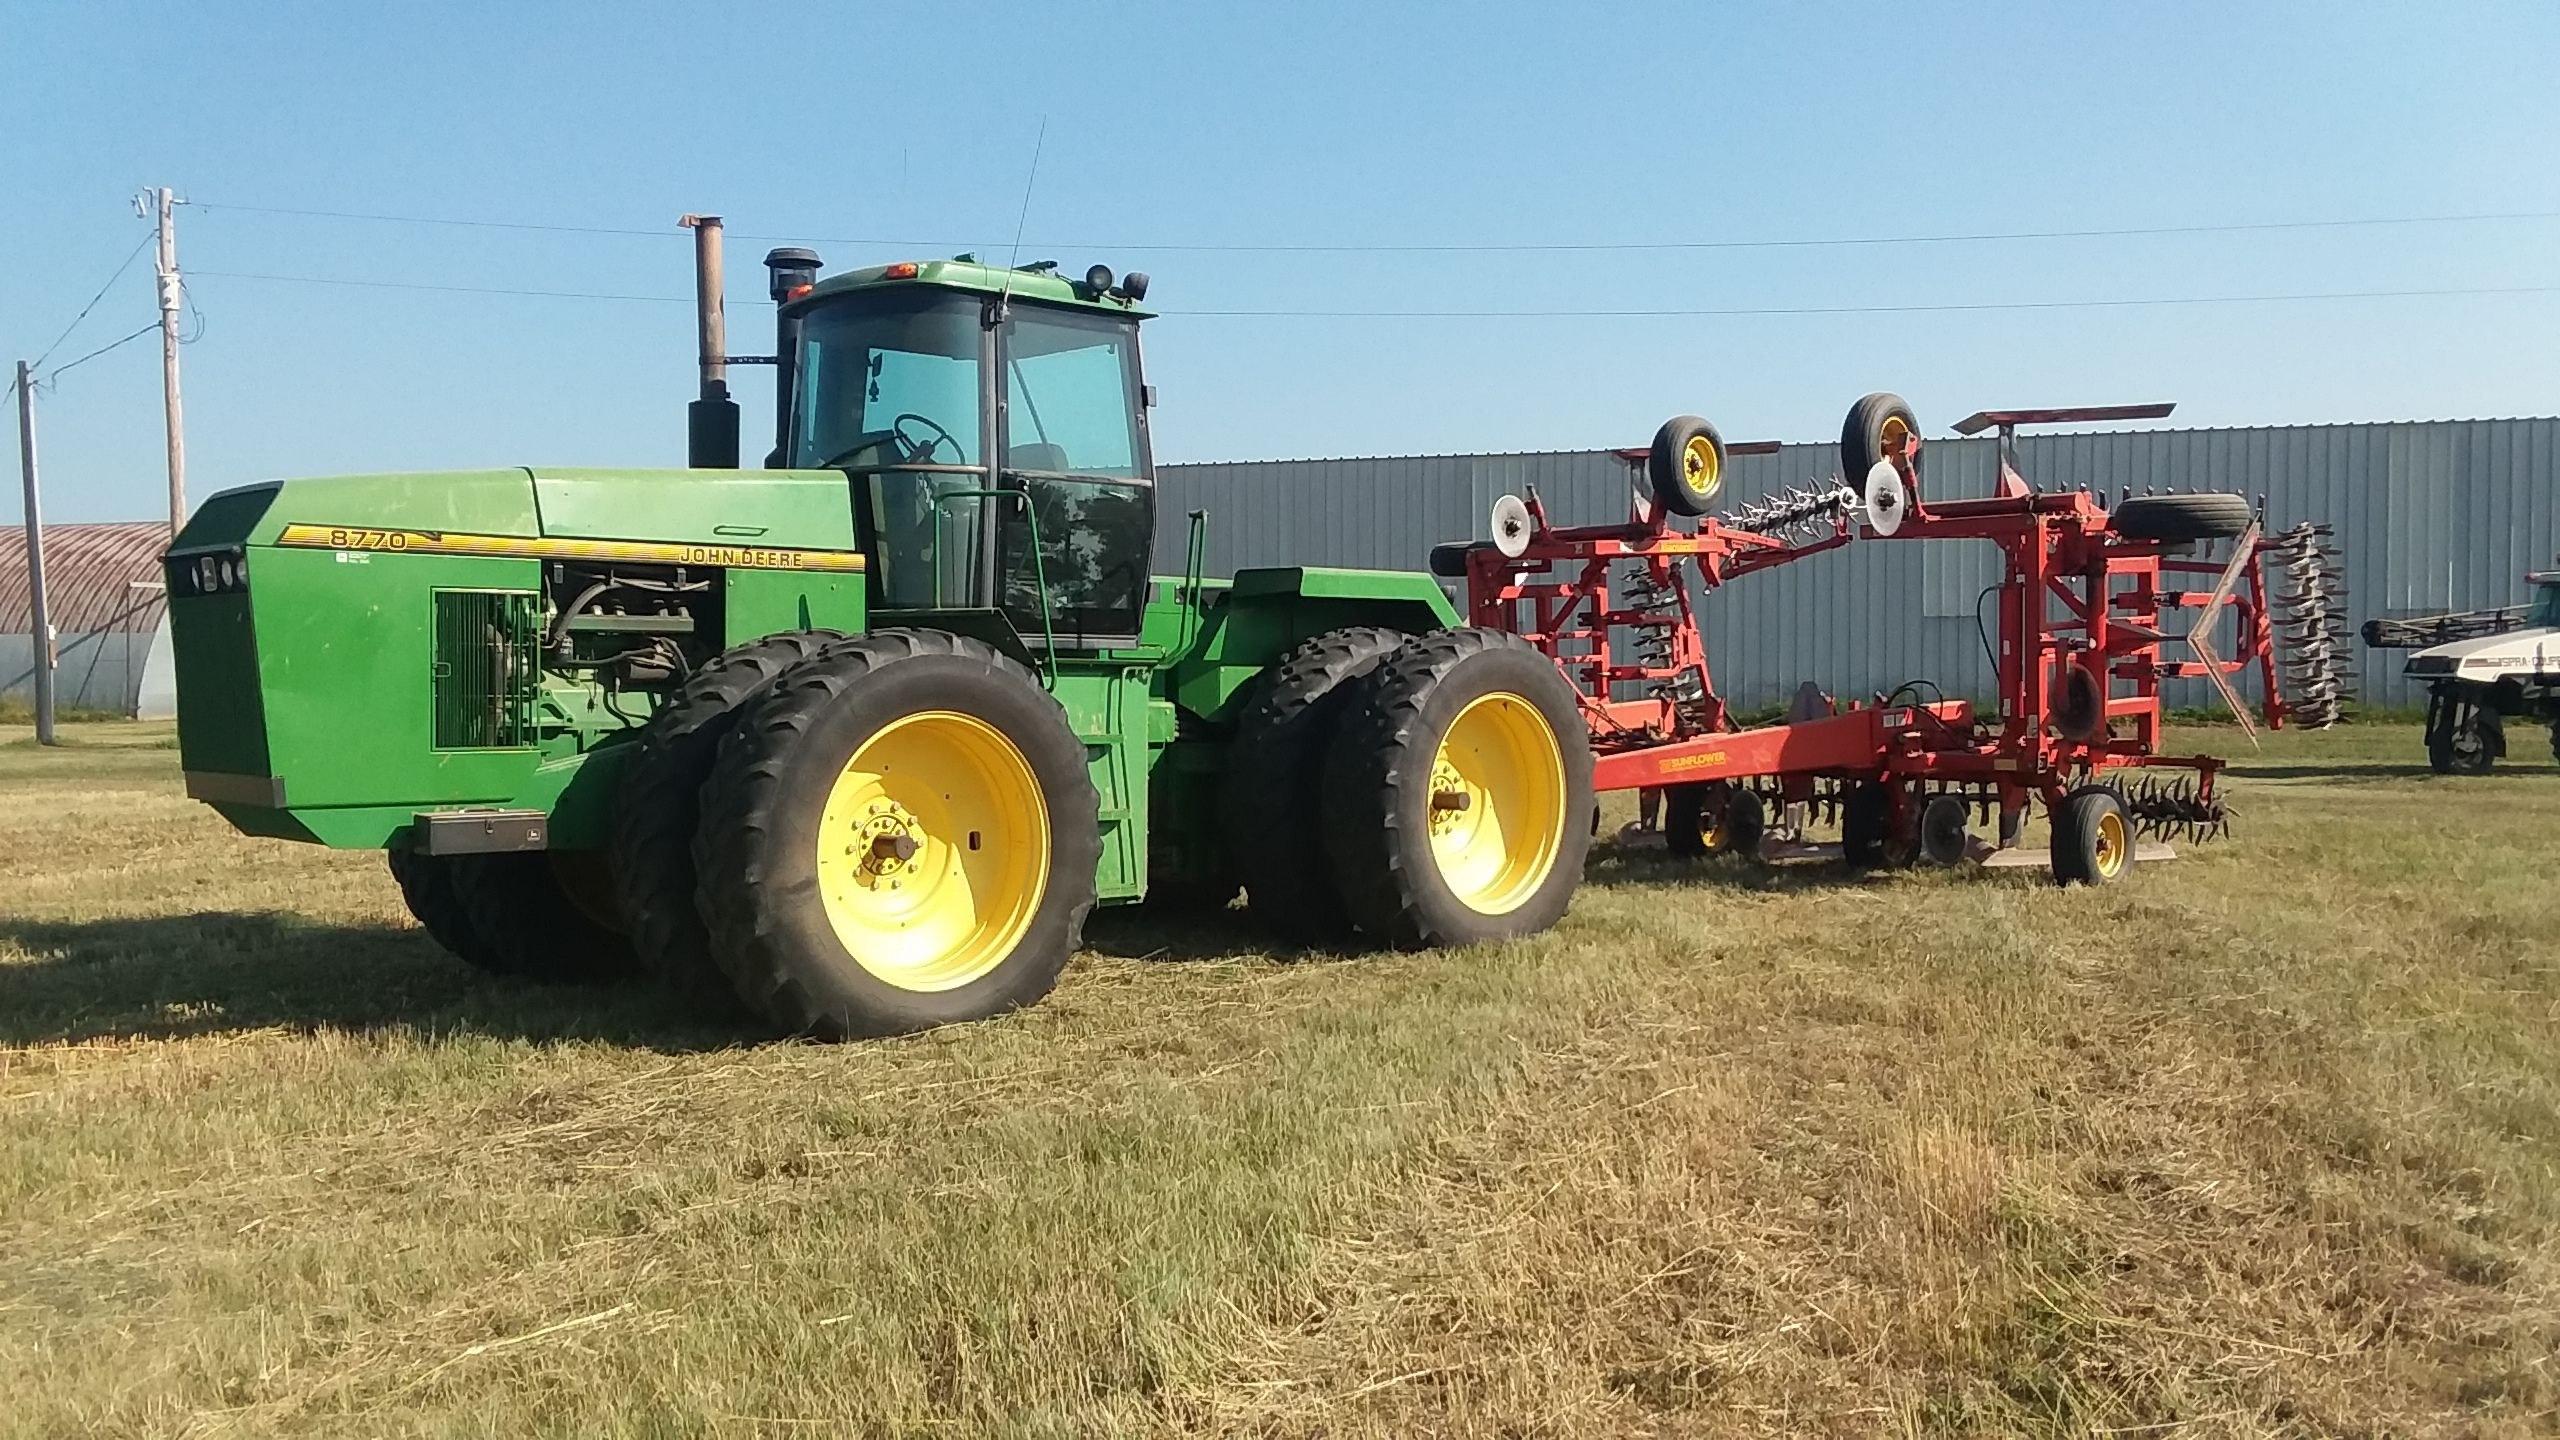 Item 19 in FARM MACHINERY AUCTION gallery